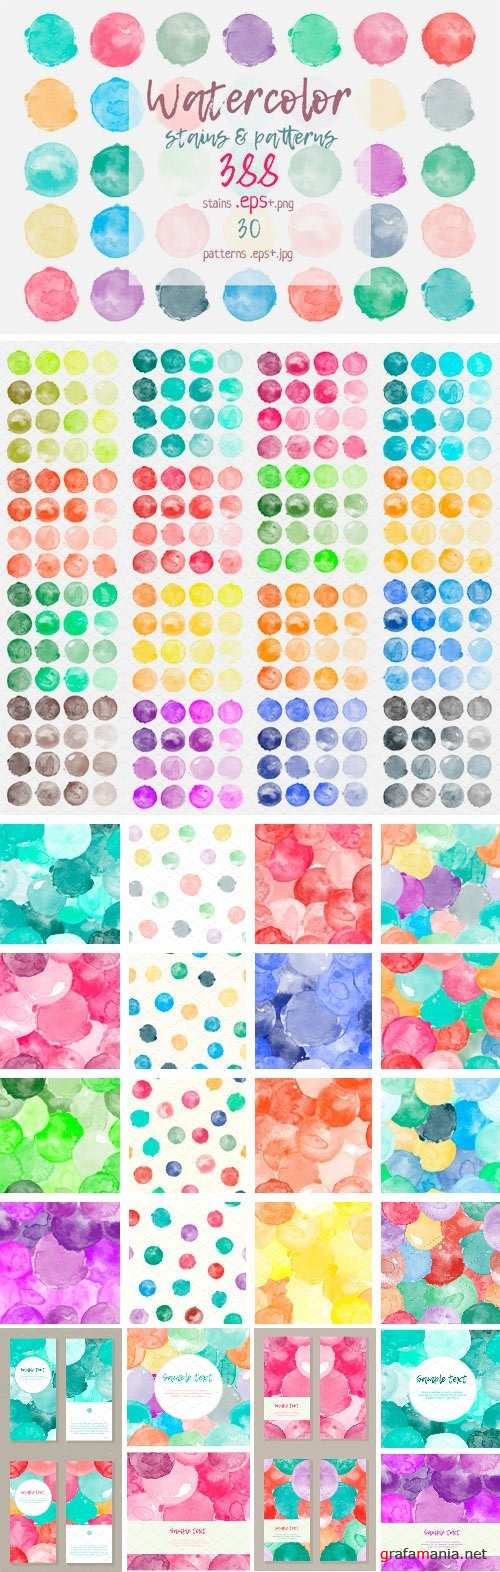 Big Set Watercolor Stains & Patterns - 2294133